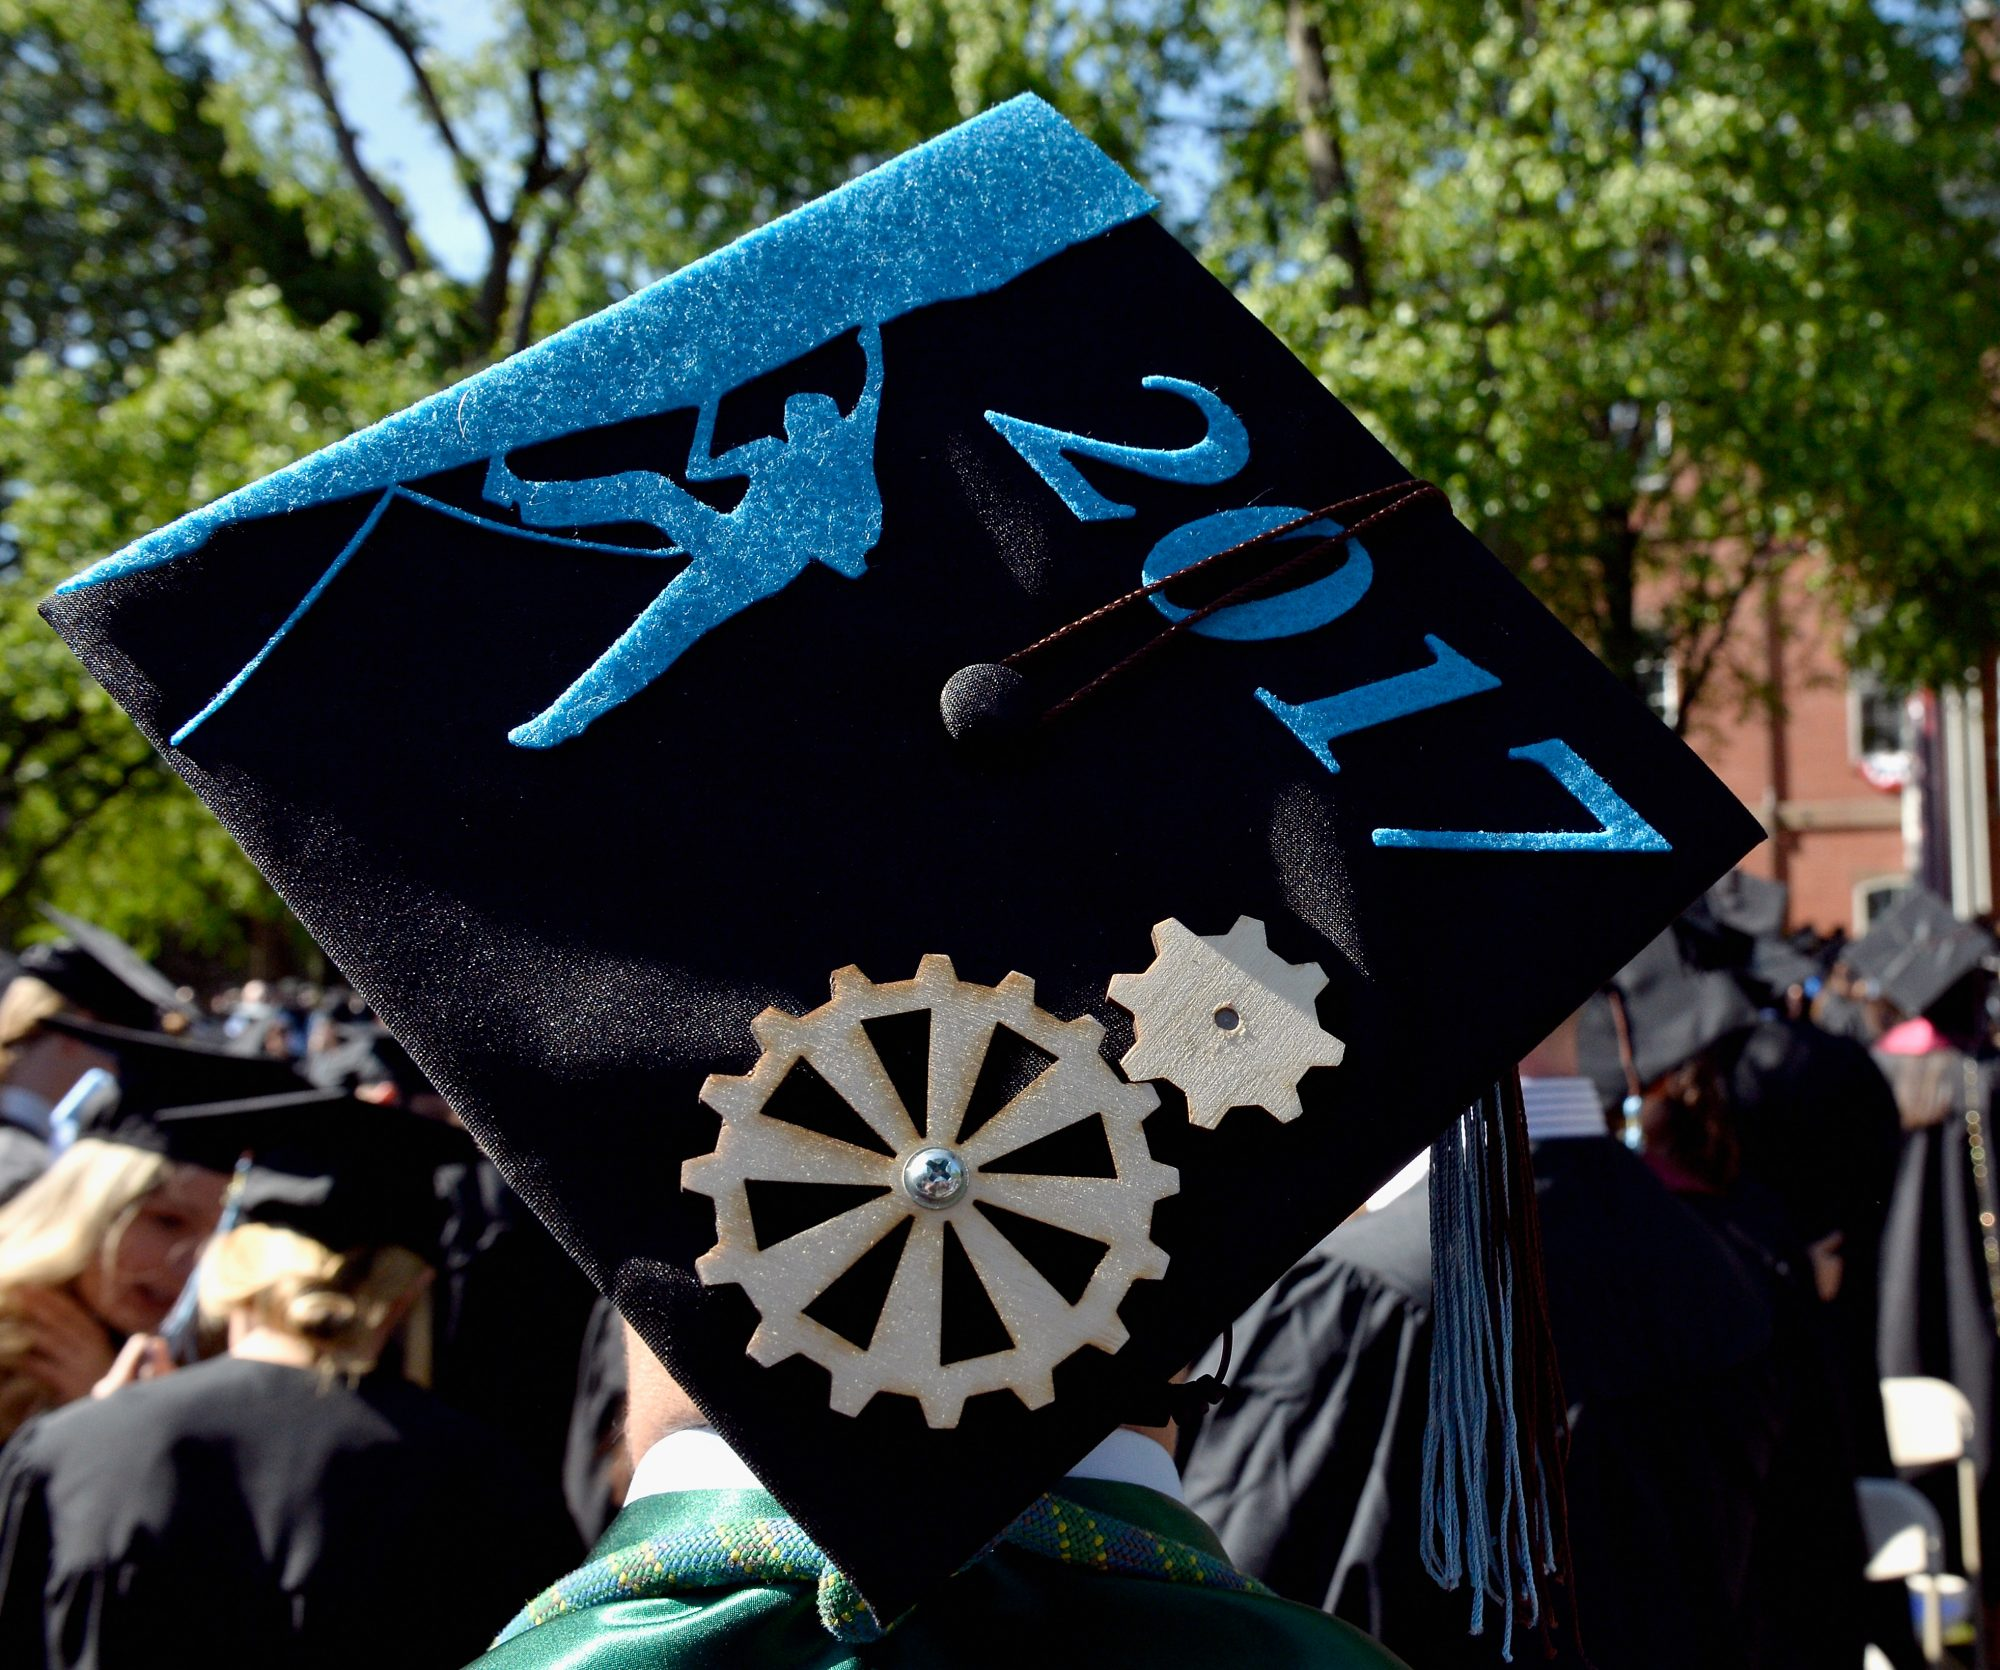 79-year-old Great-Grandmother Graduates From College: 'Education Is The Key'